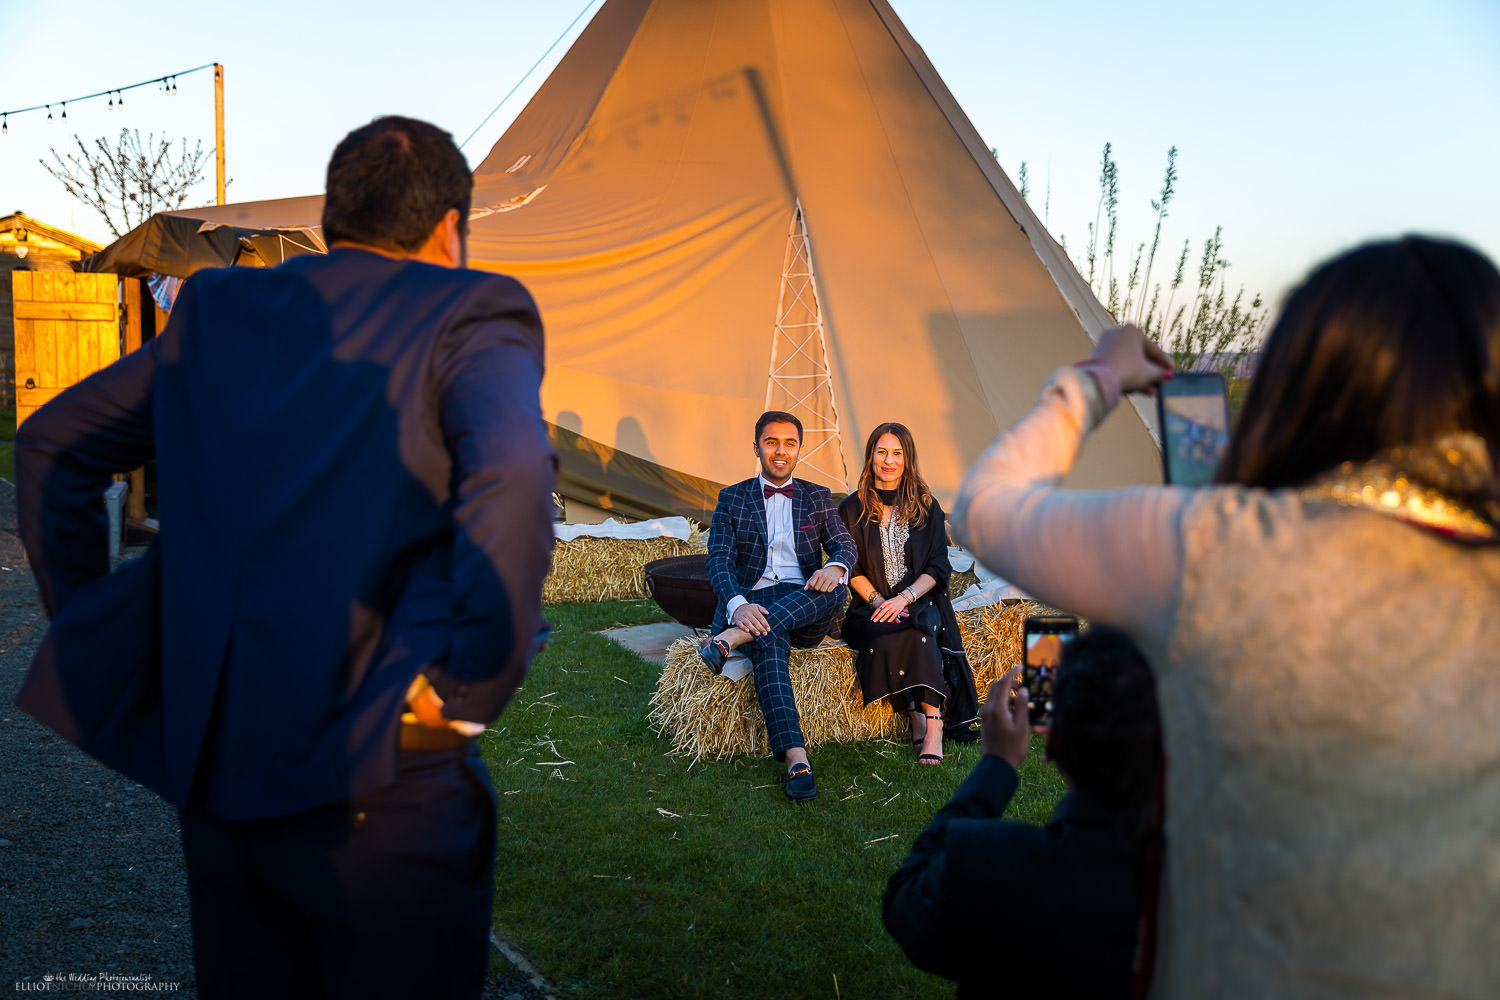 Photo opportunities at Sunset next to the Tipi at Vallum Farm. Photo by Elliot Nichol Photography.